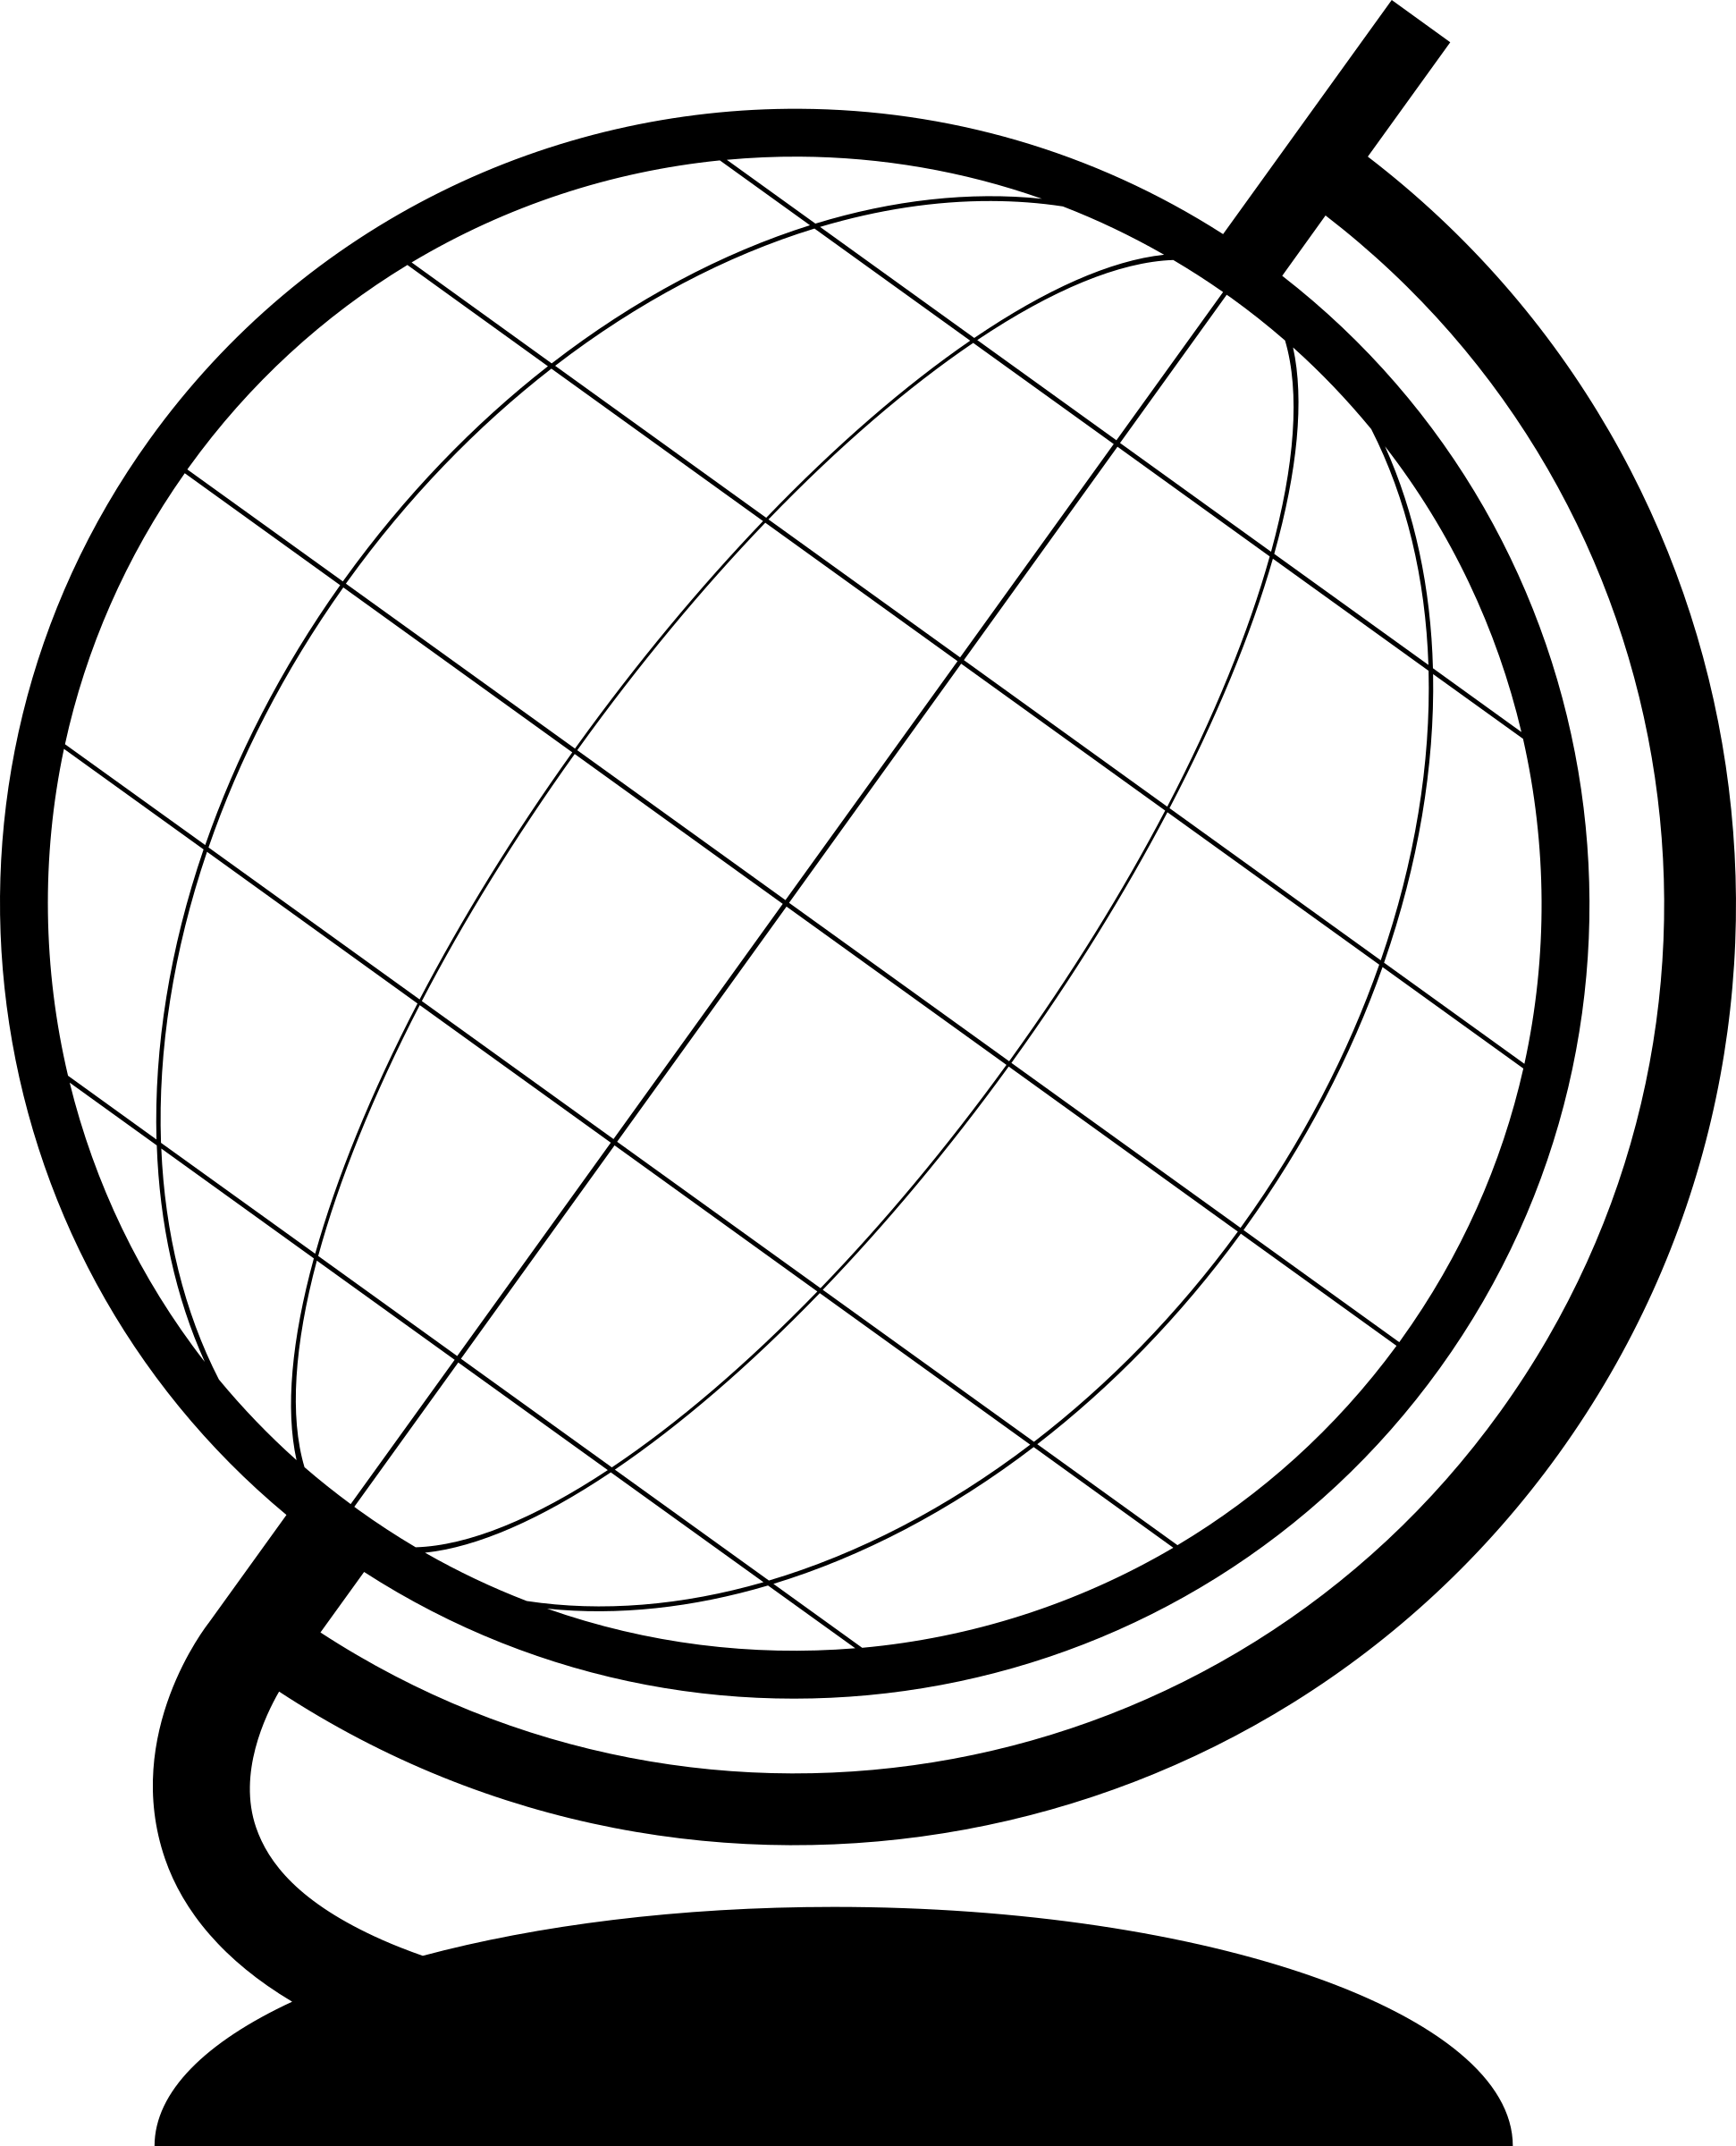 Free Globe Outline Cliparts Download Free Clip Art Free Clip Art On Clipart Library